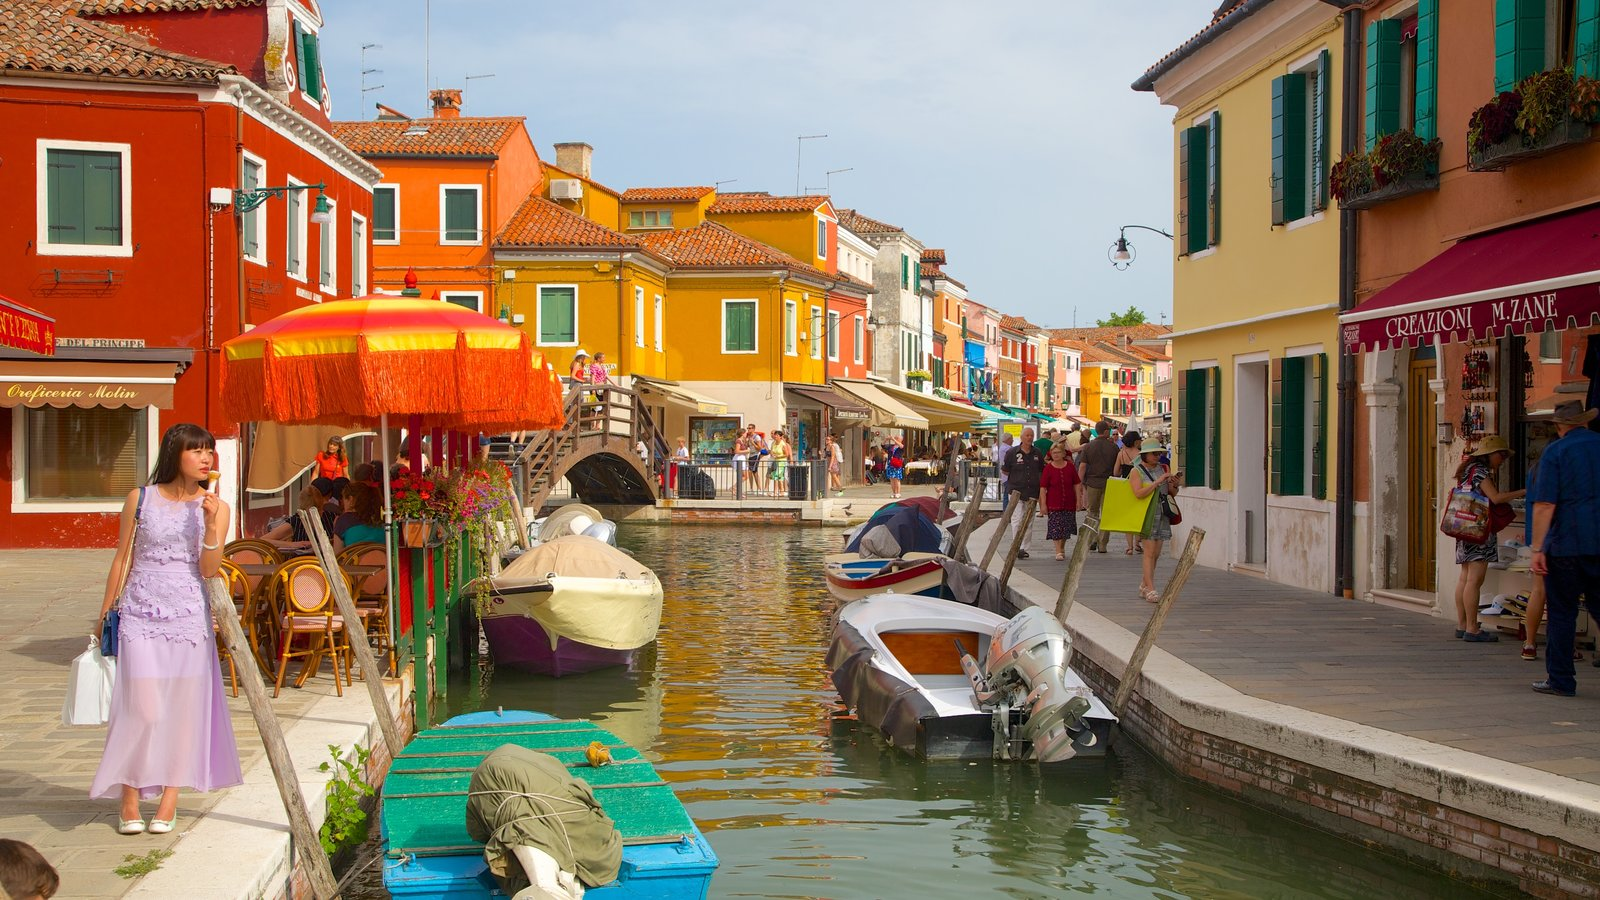 Burano showing a river or creek and heritage architecture